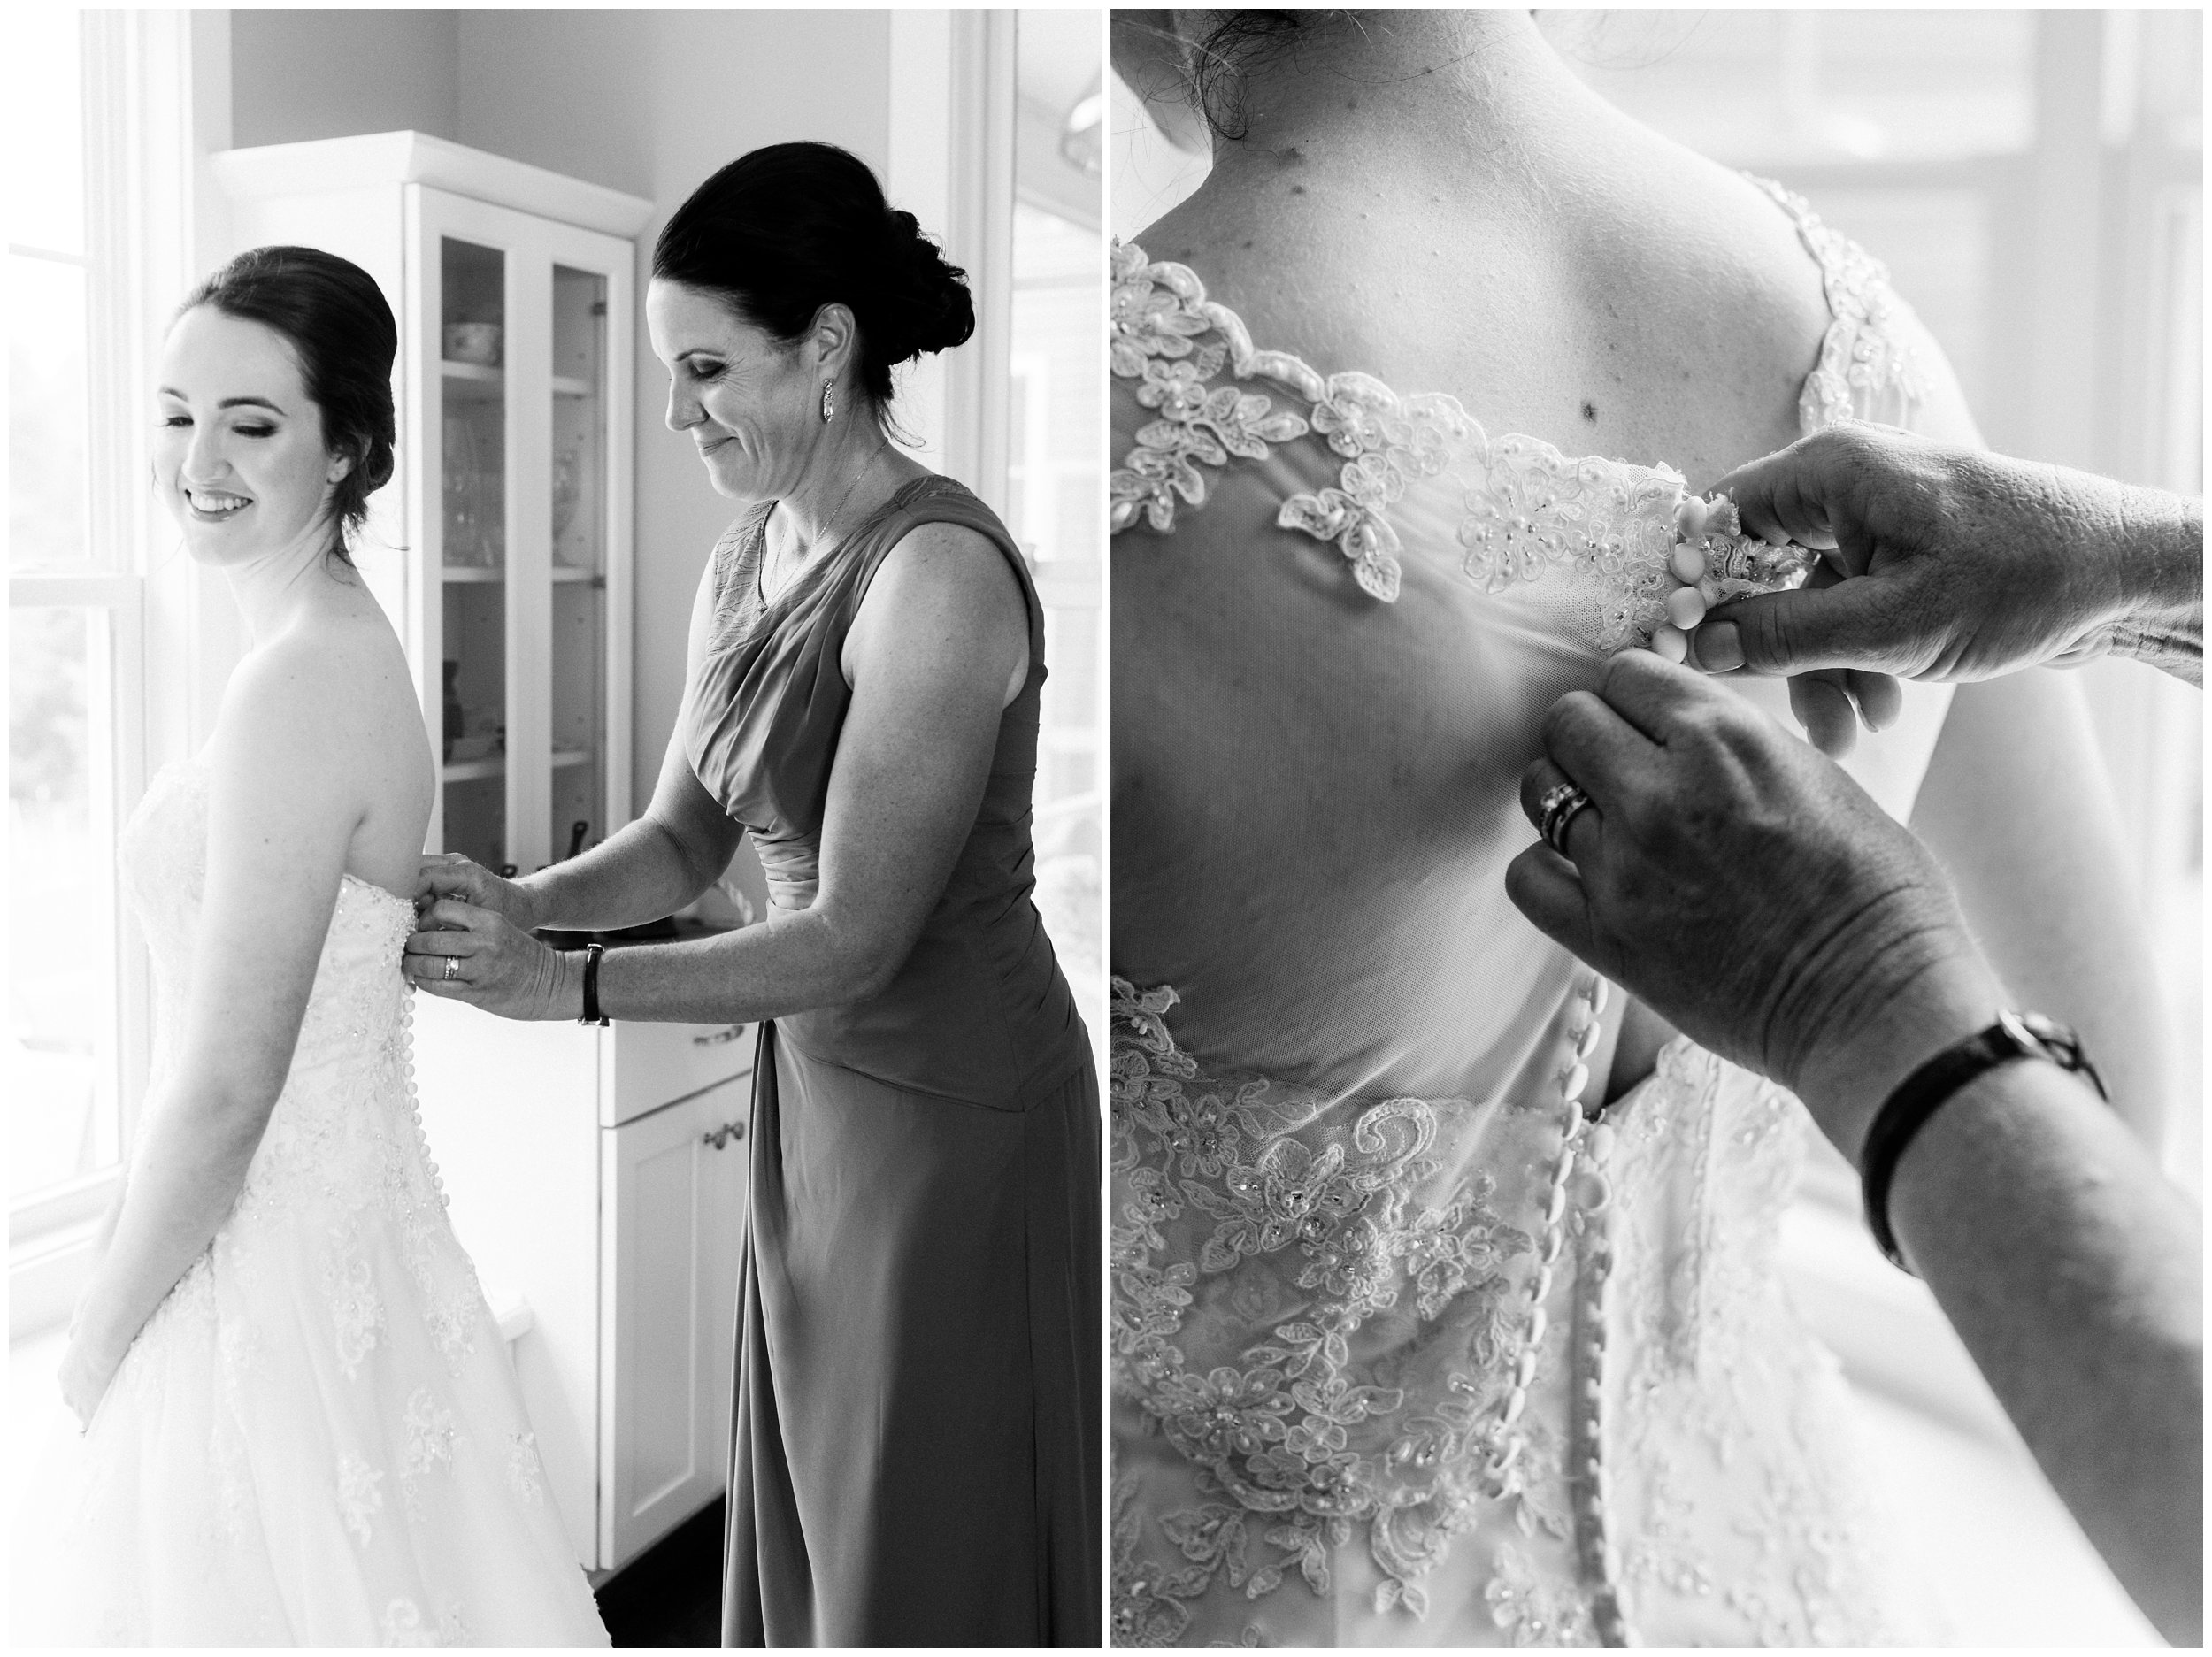 mother of the bride helping get bride ready